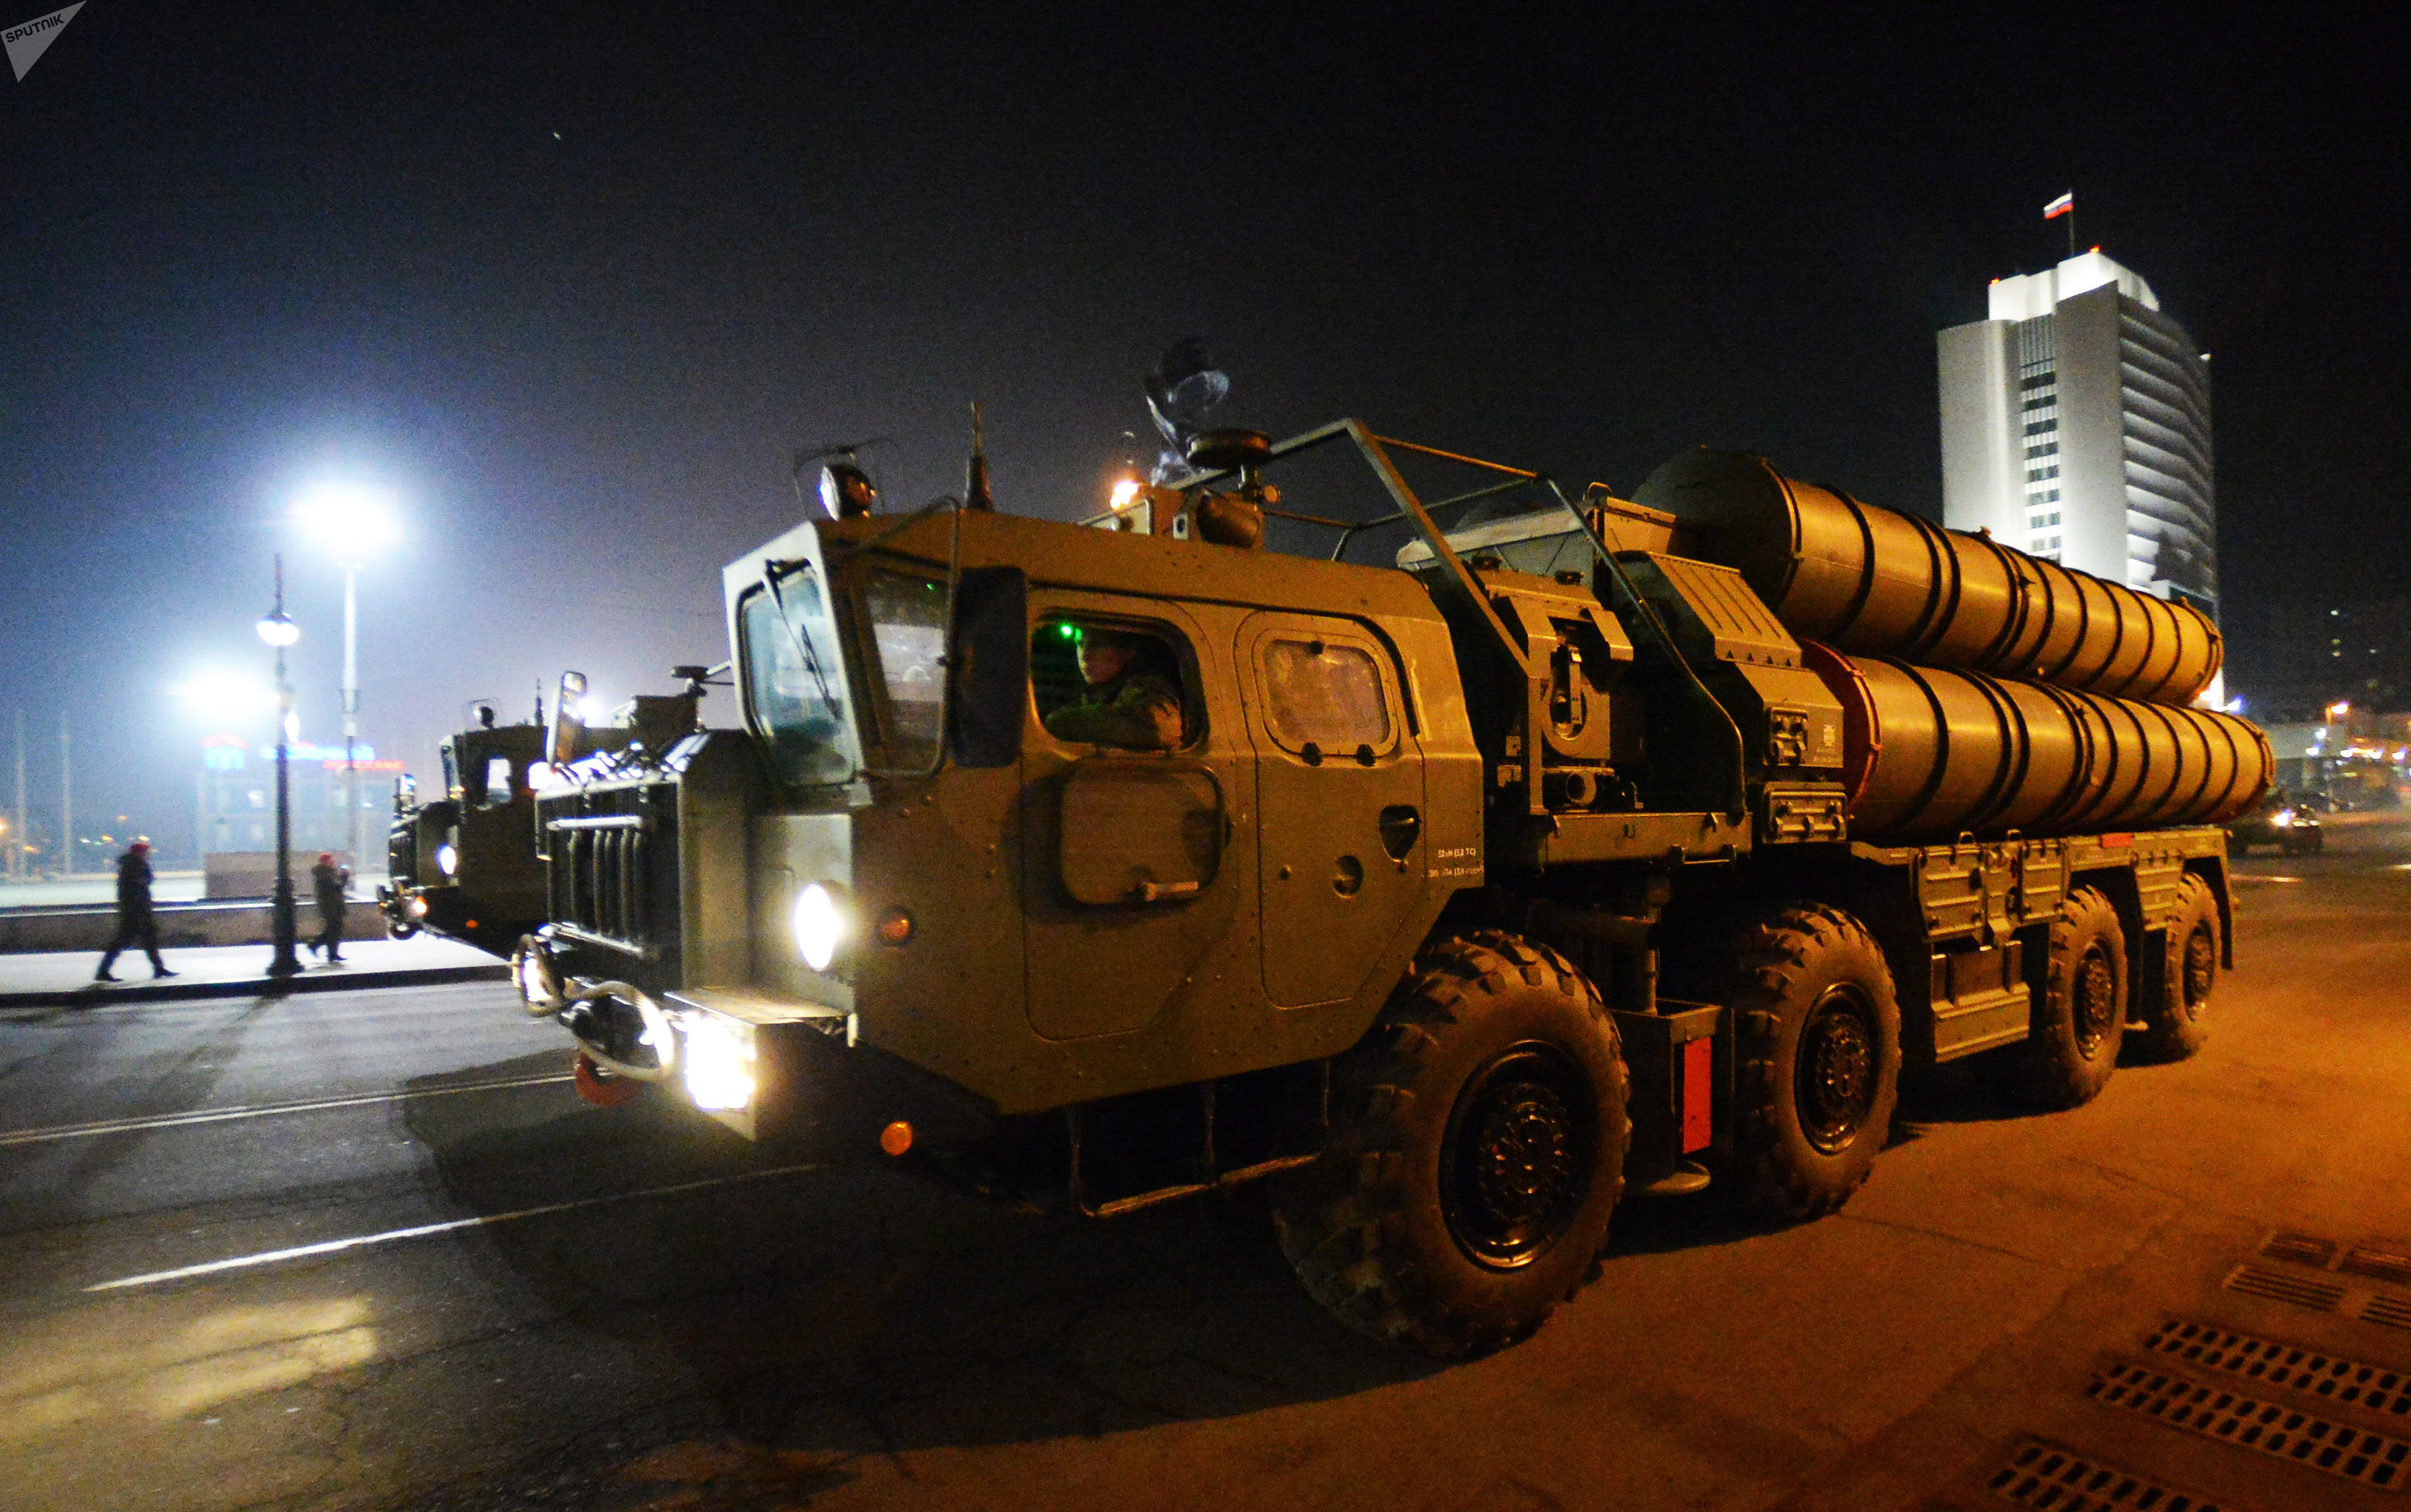 An S-400 air defense missile system